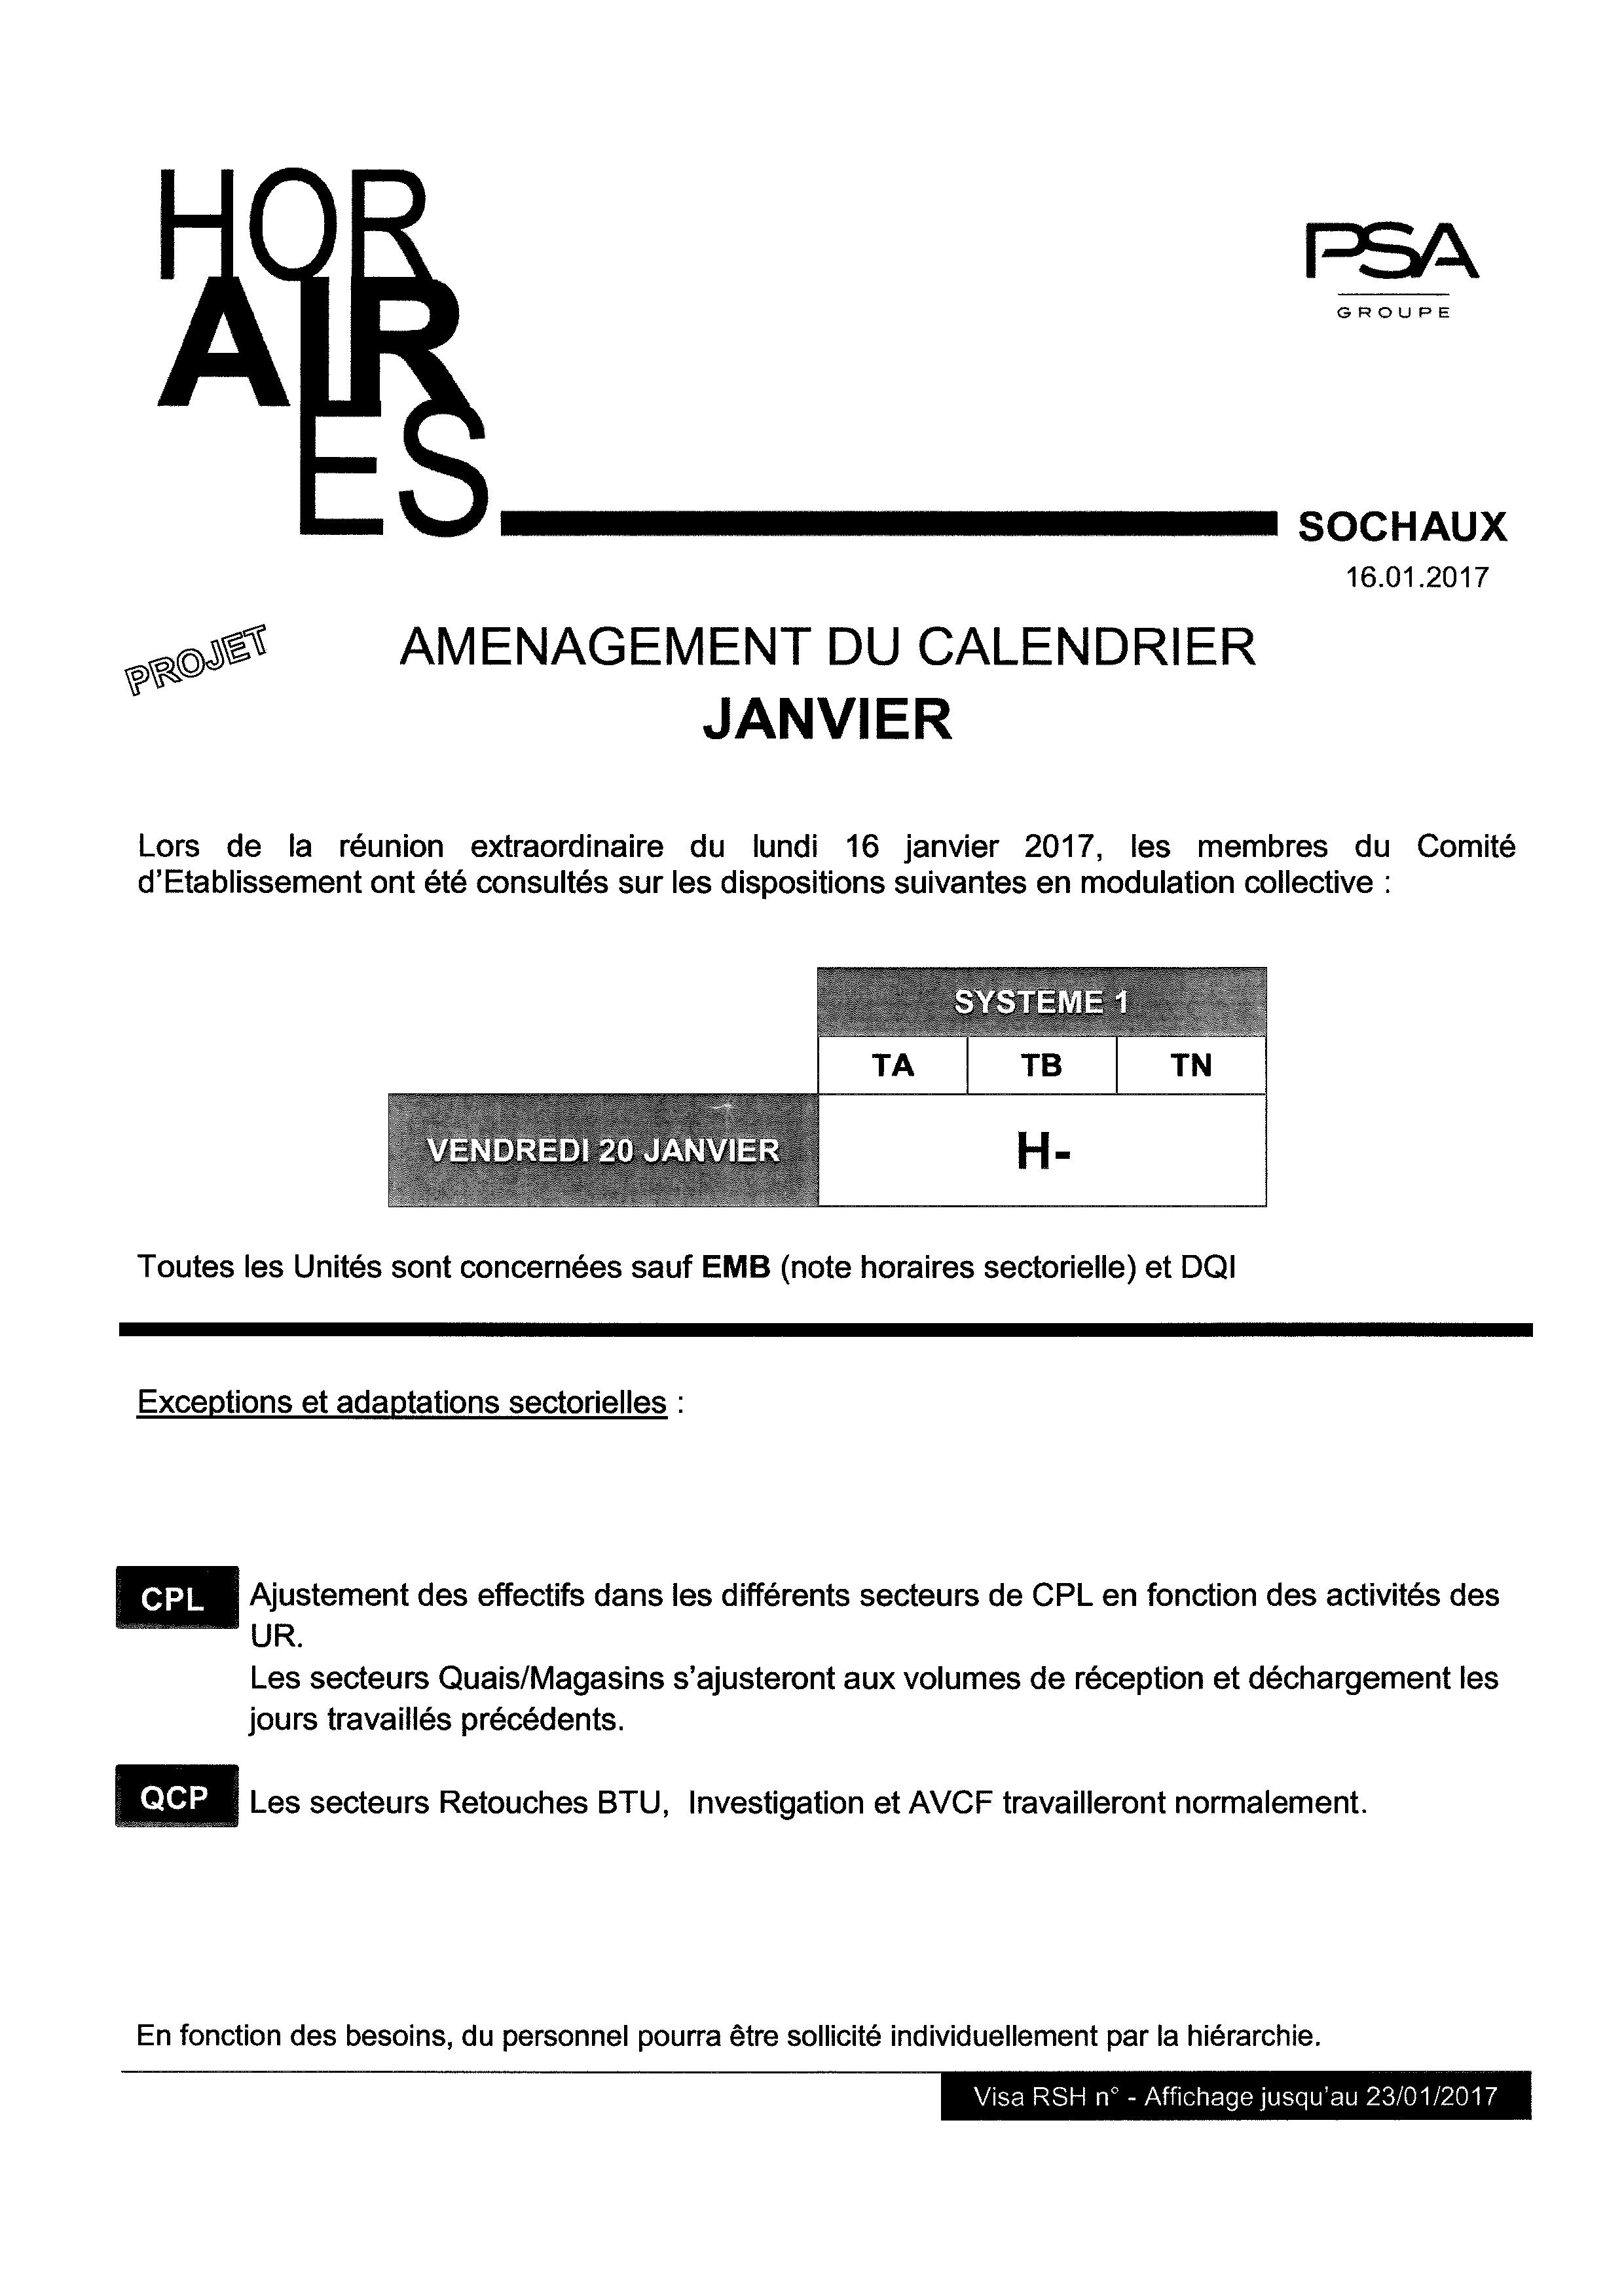 Note horaire 16-01-17